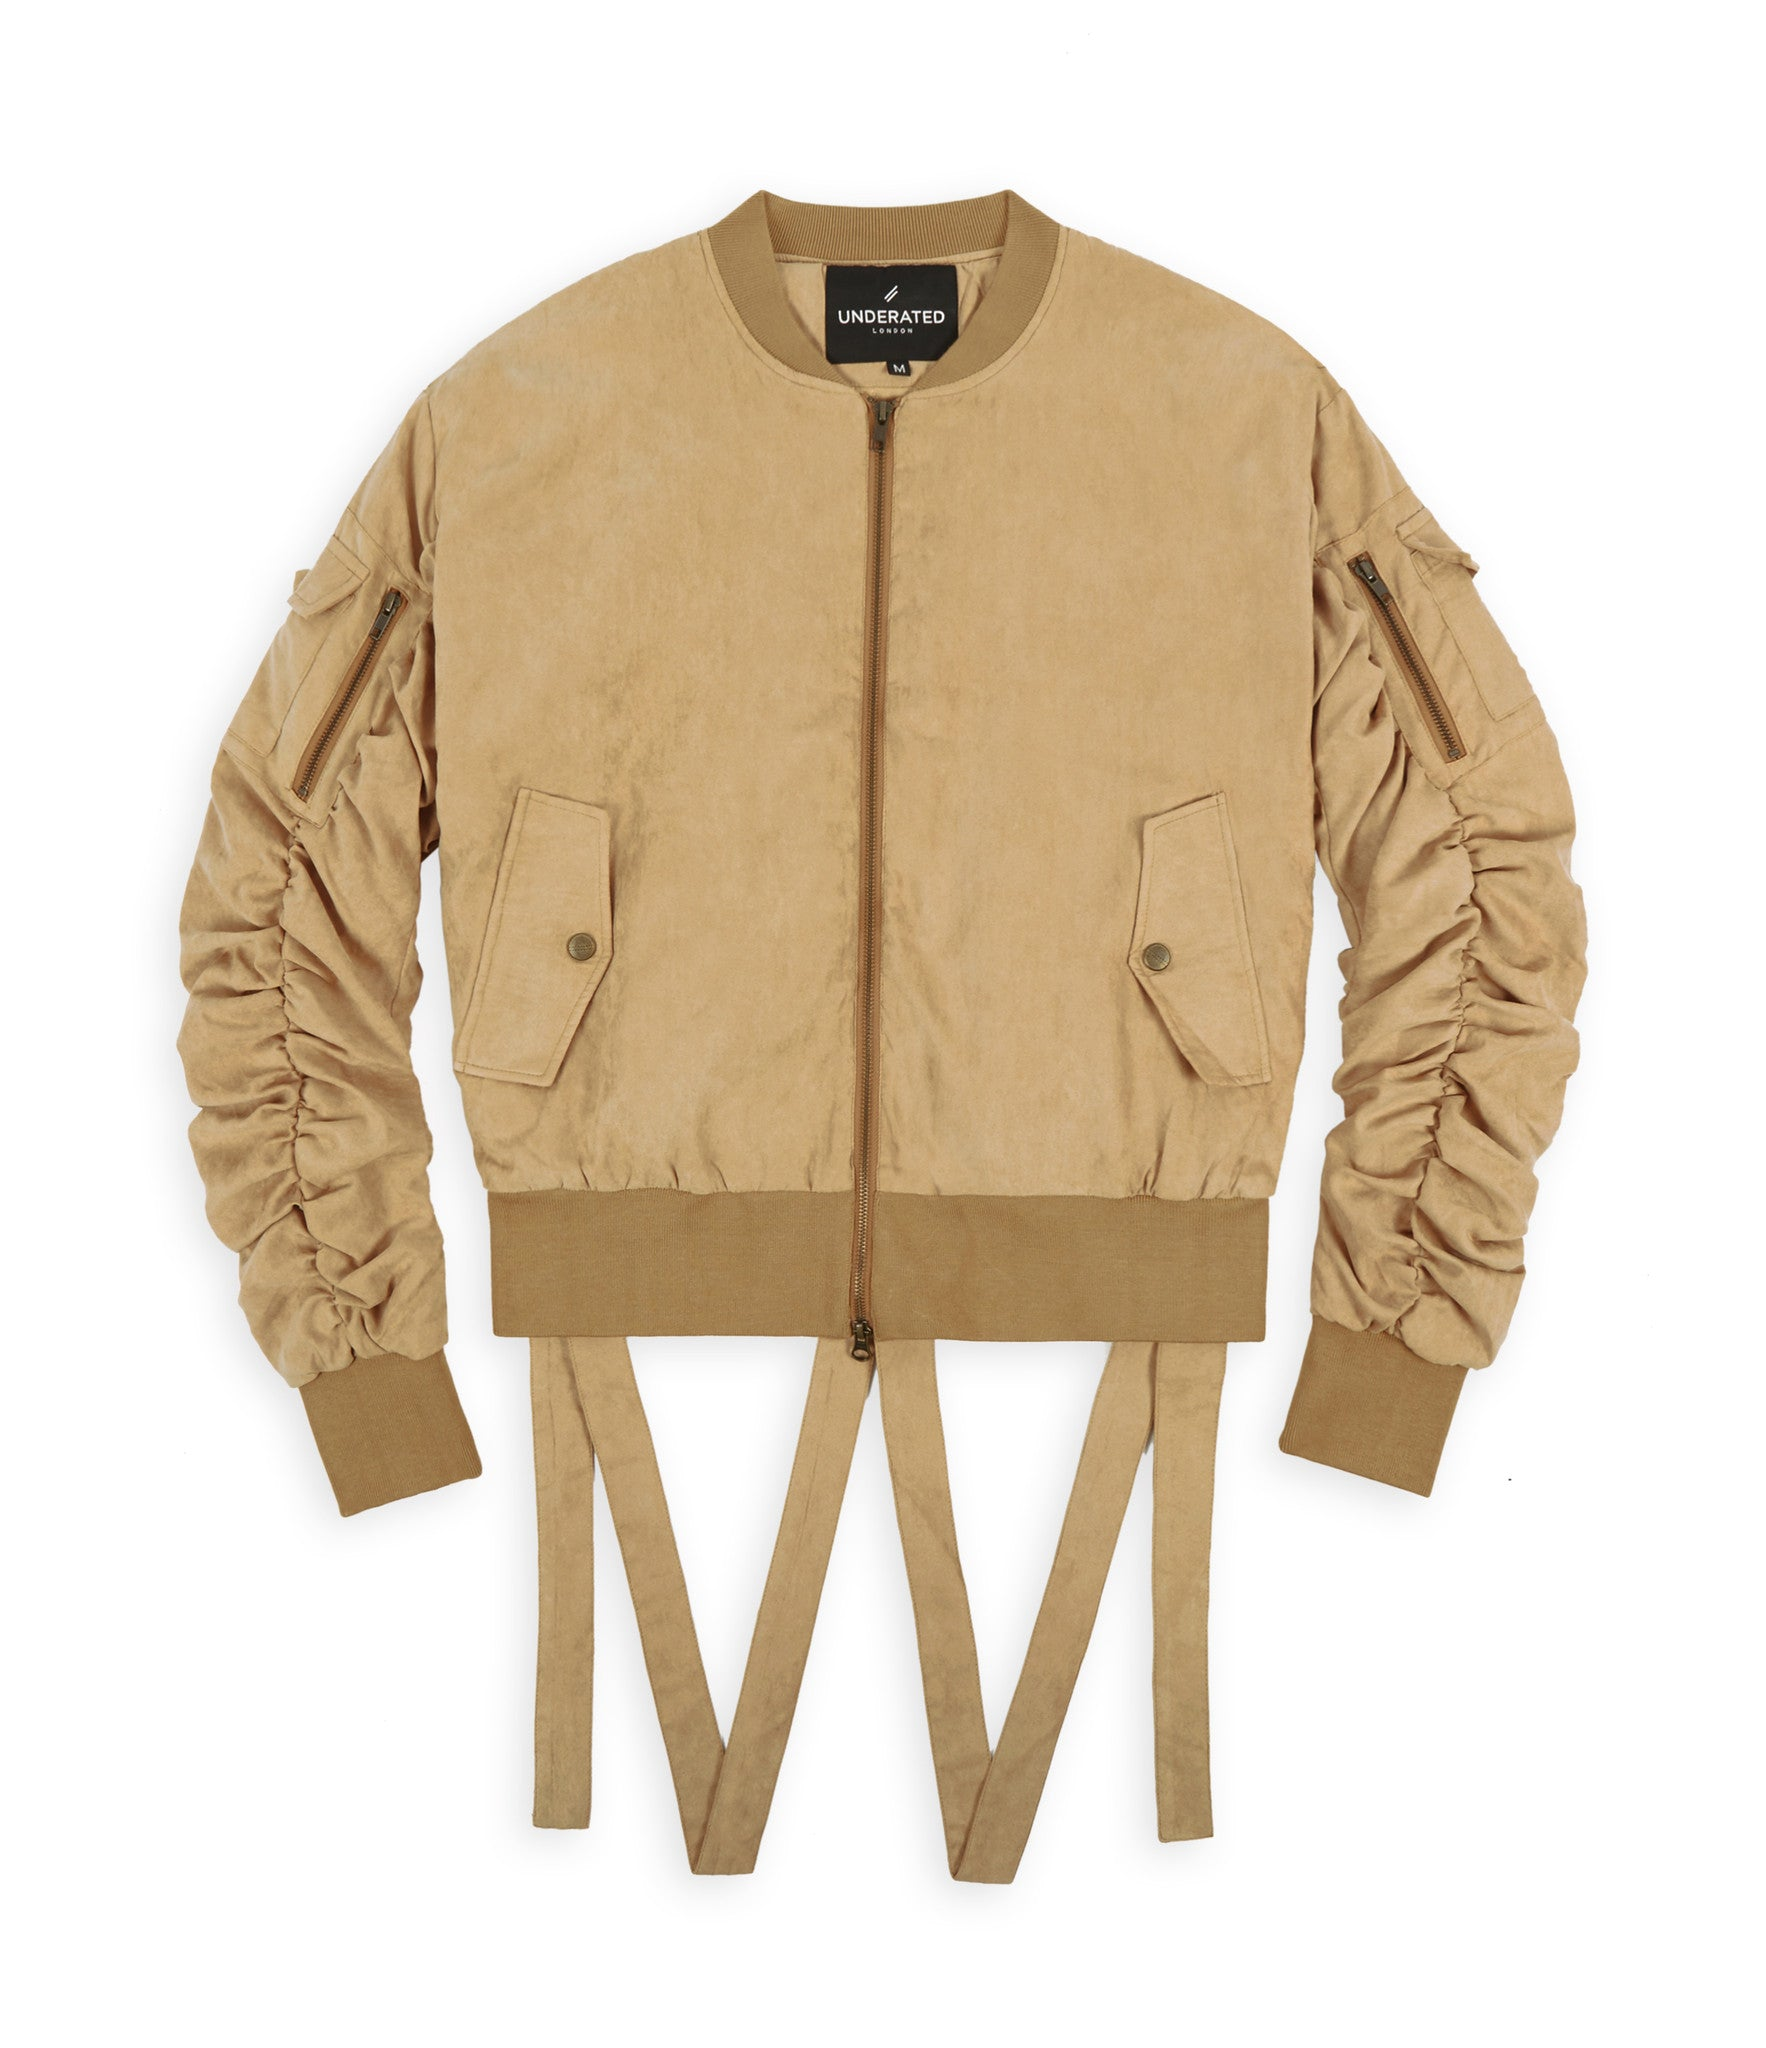 JK264 Suede Strapped Bomber Jacket - Beige - underated london - underatedco - 1